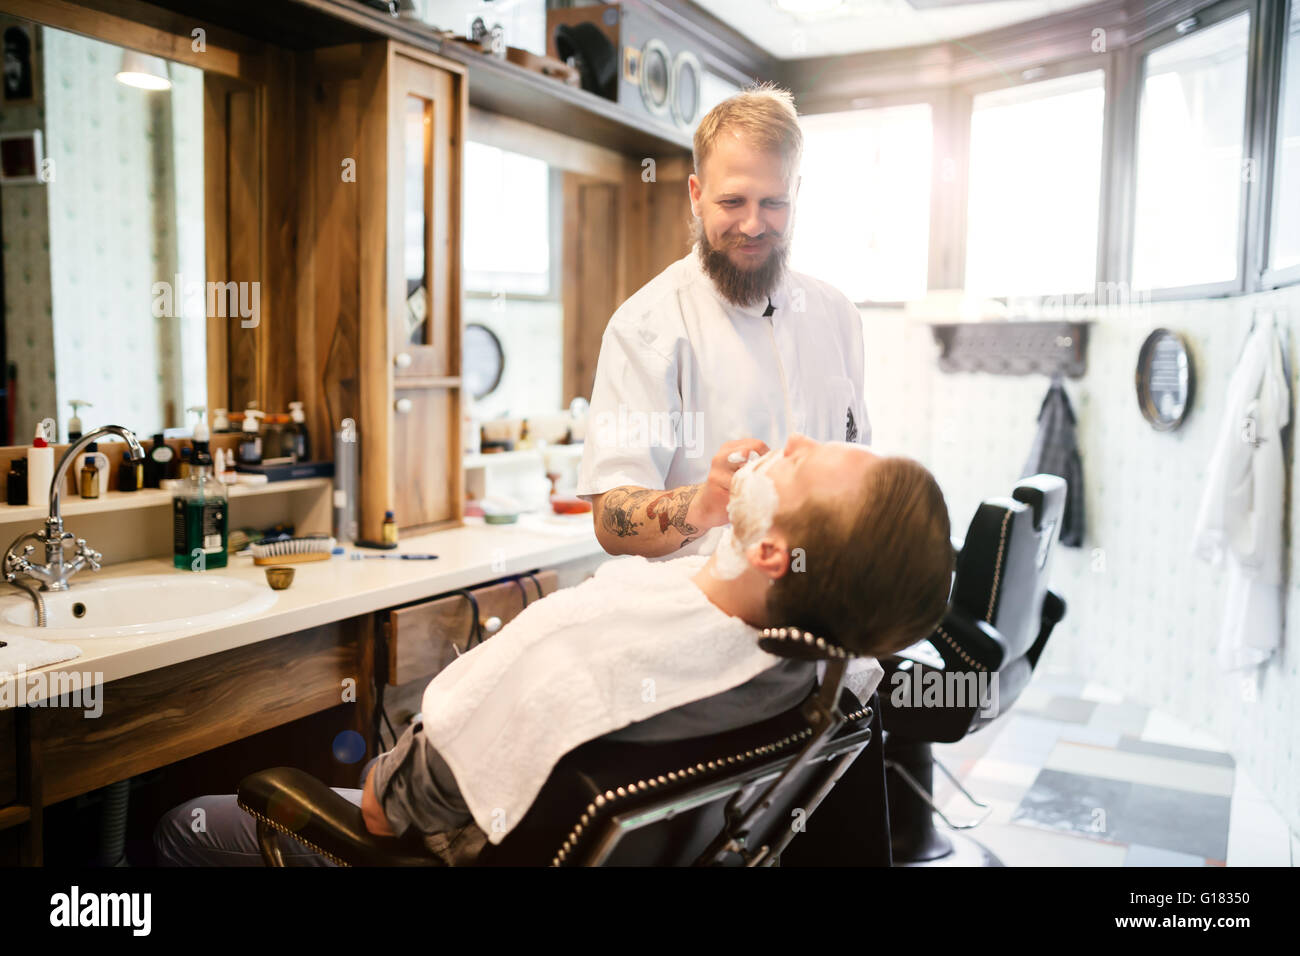 Male receiving hair beard treatment in barber shop - Stock Image